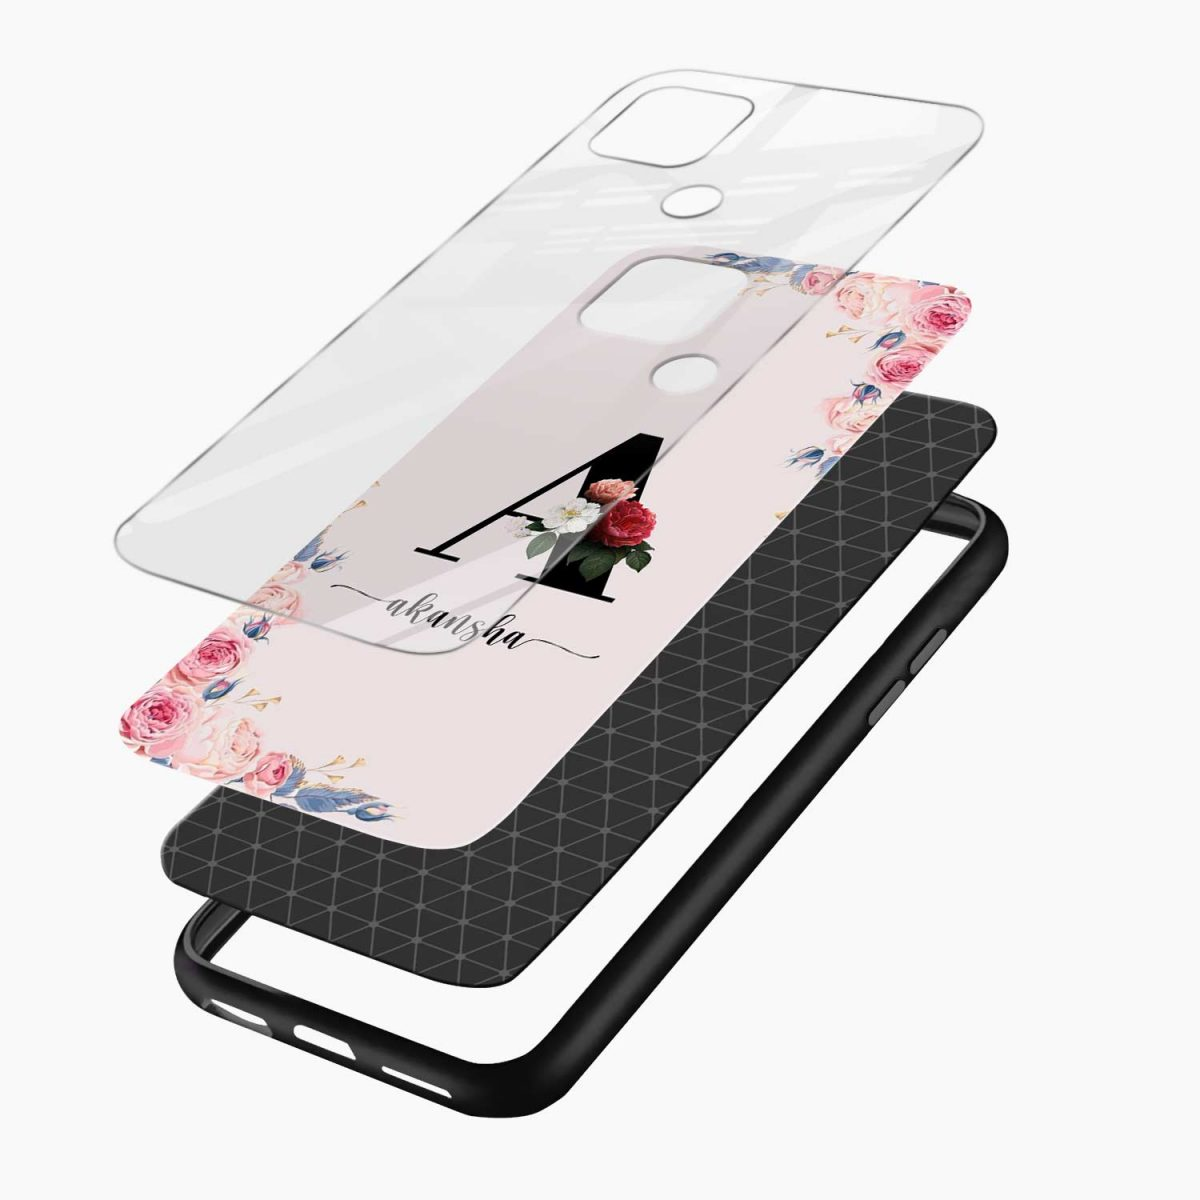 floral name personalised layers view oppo a15 back cover